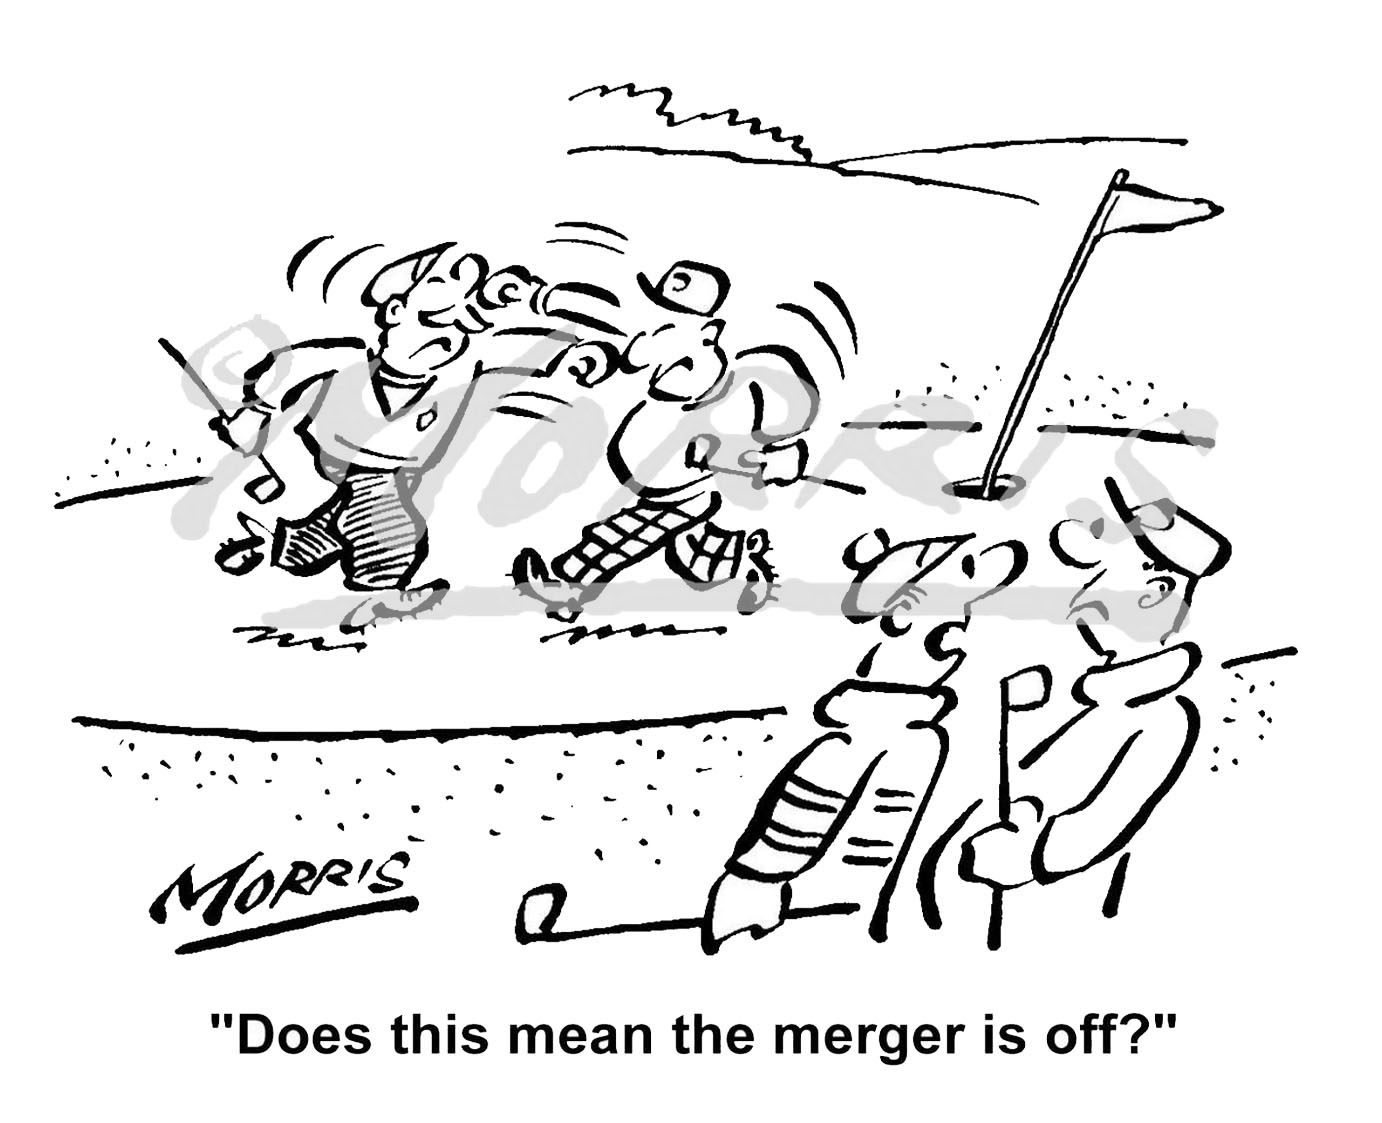 Golf business cartoon, golfing cartoon, company merger cartoon, – Ref: 1956bw